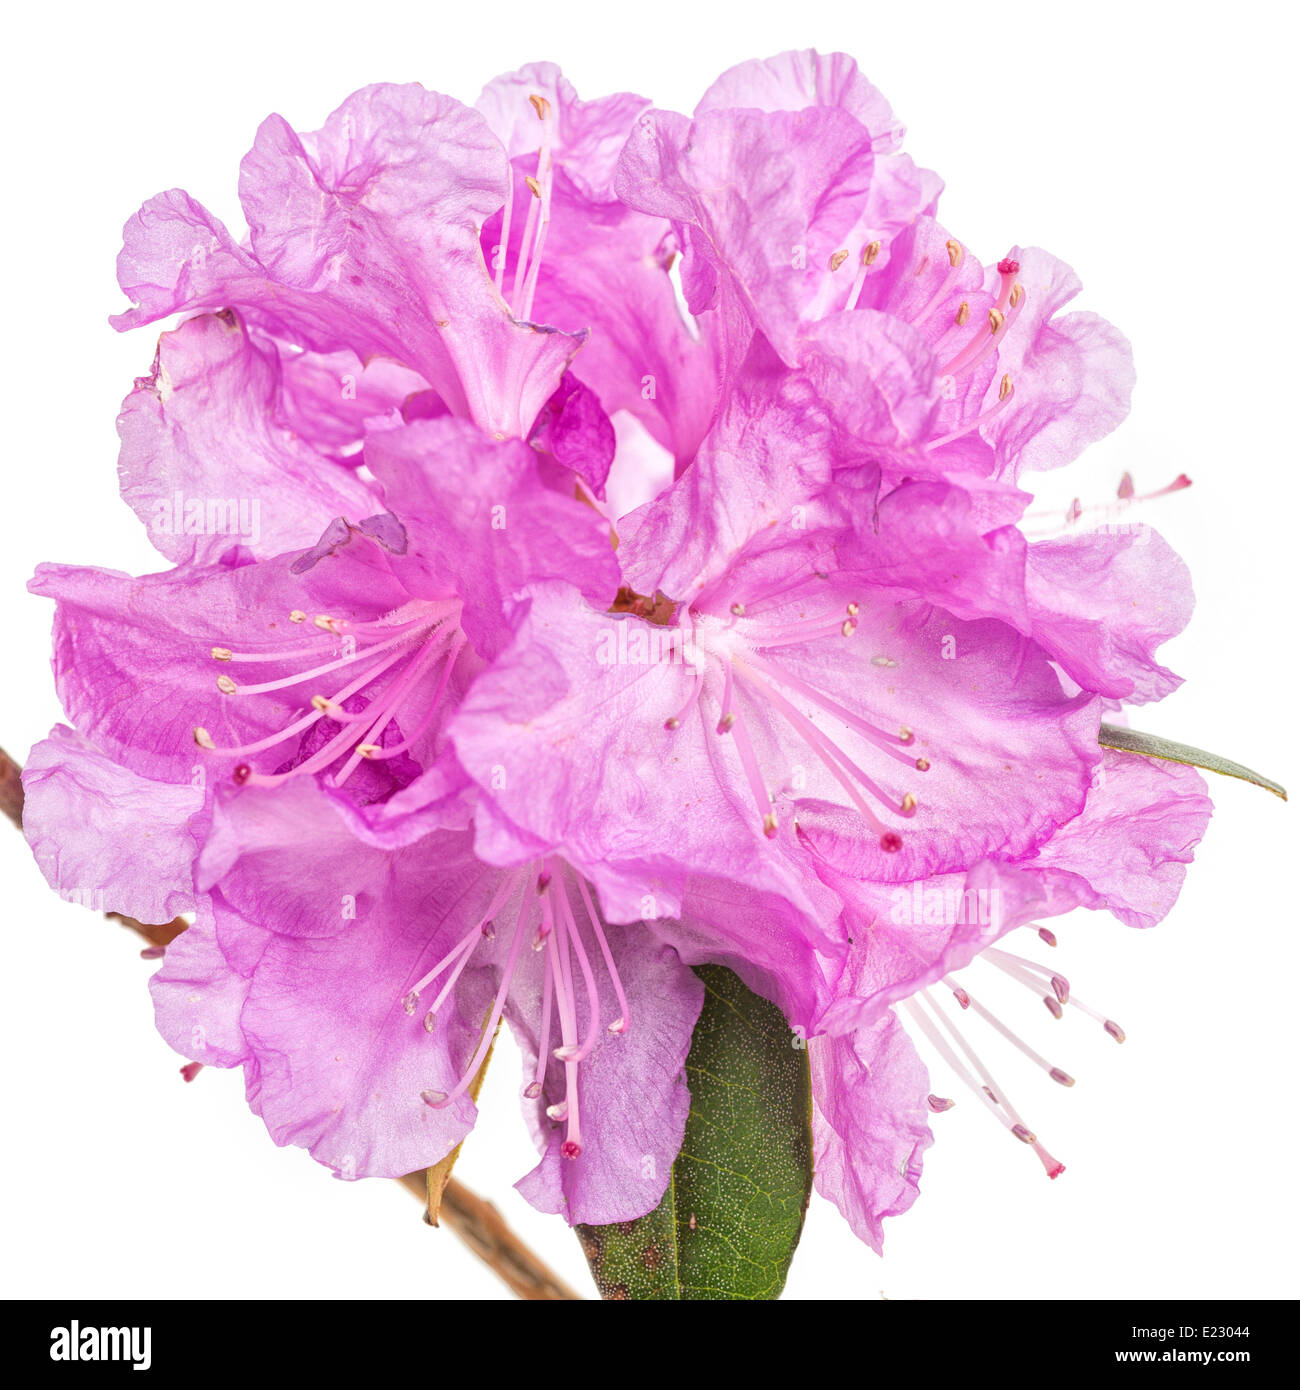 Flowers of the early flowering northern shrub, the PJM Rhododendron in a studio setting. - Stock Image